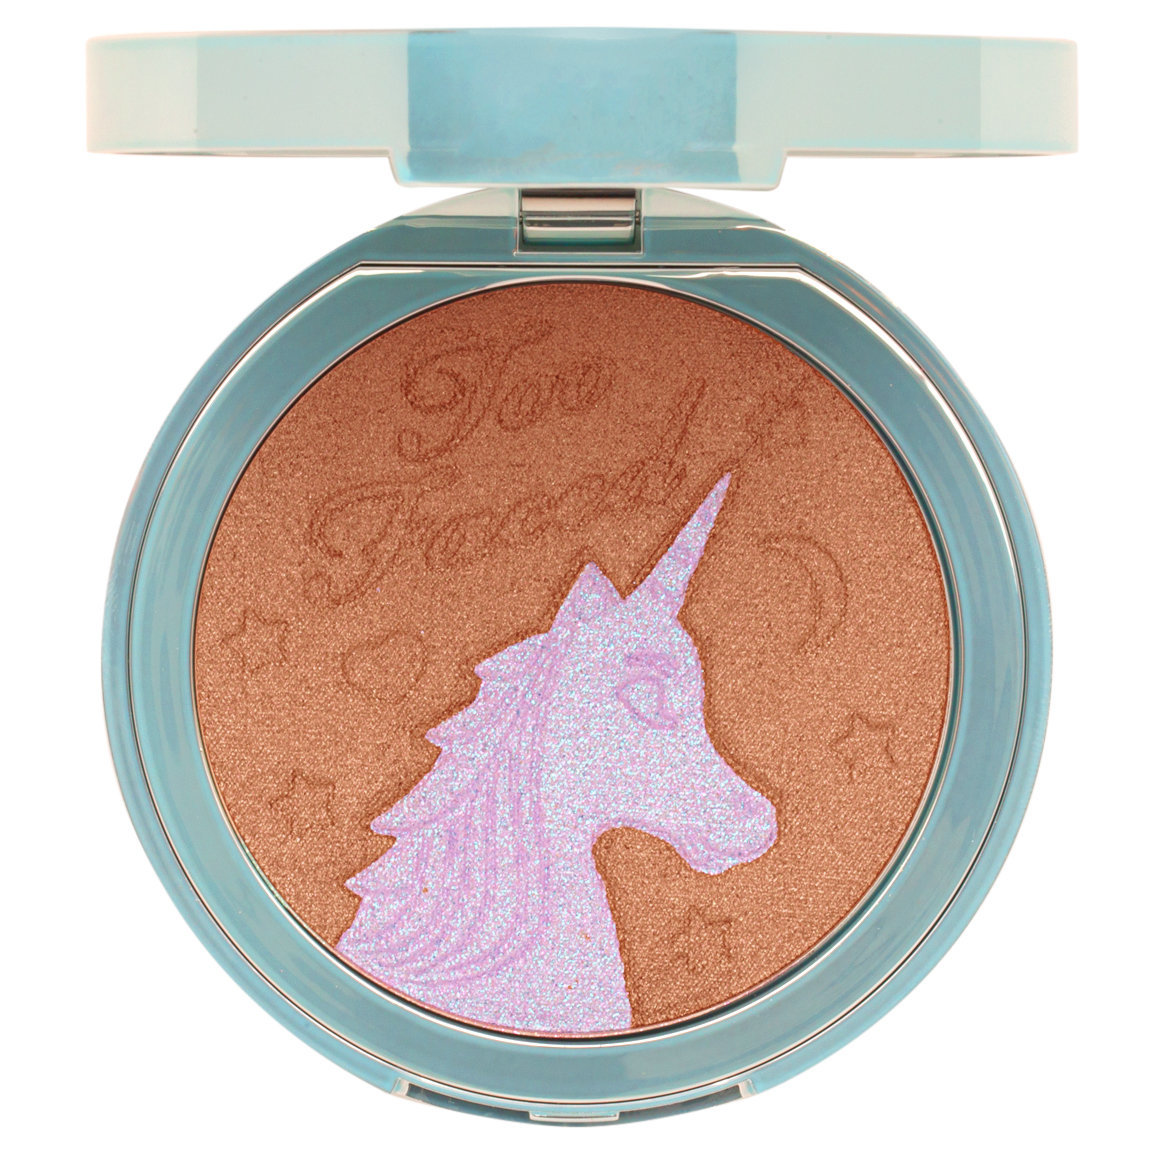 Too Faced Unicorn Tears Bronzer product smear.